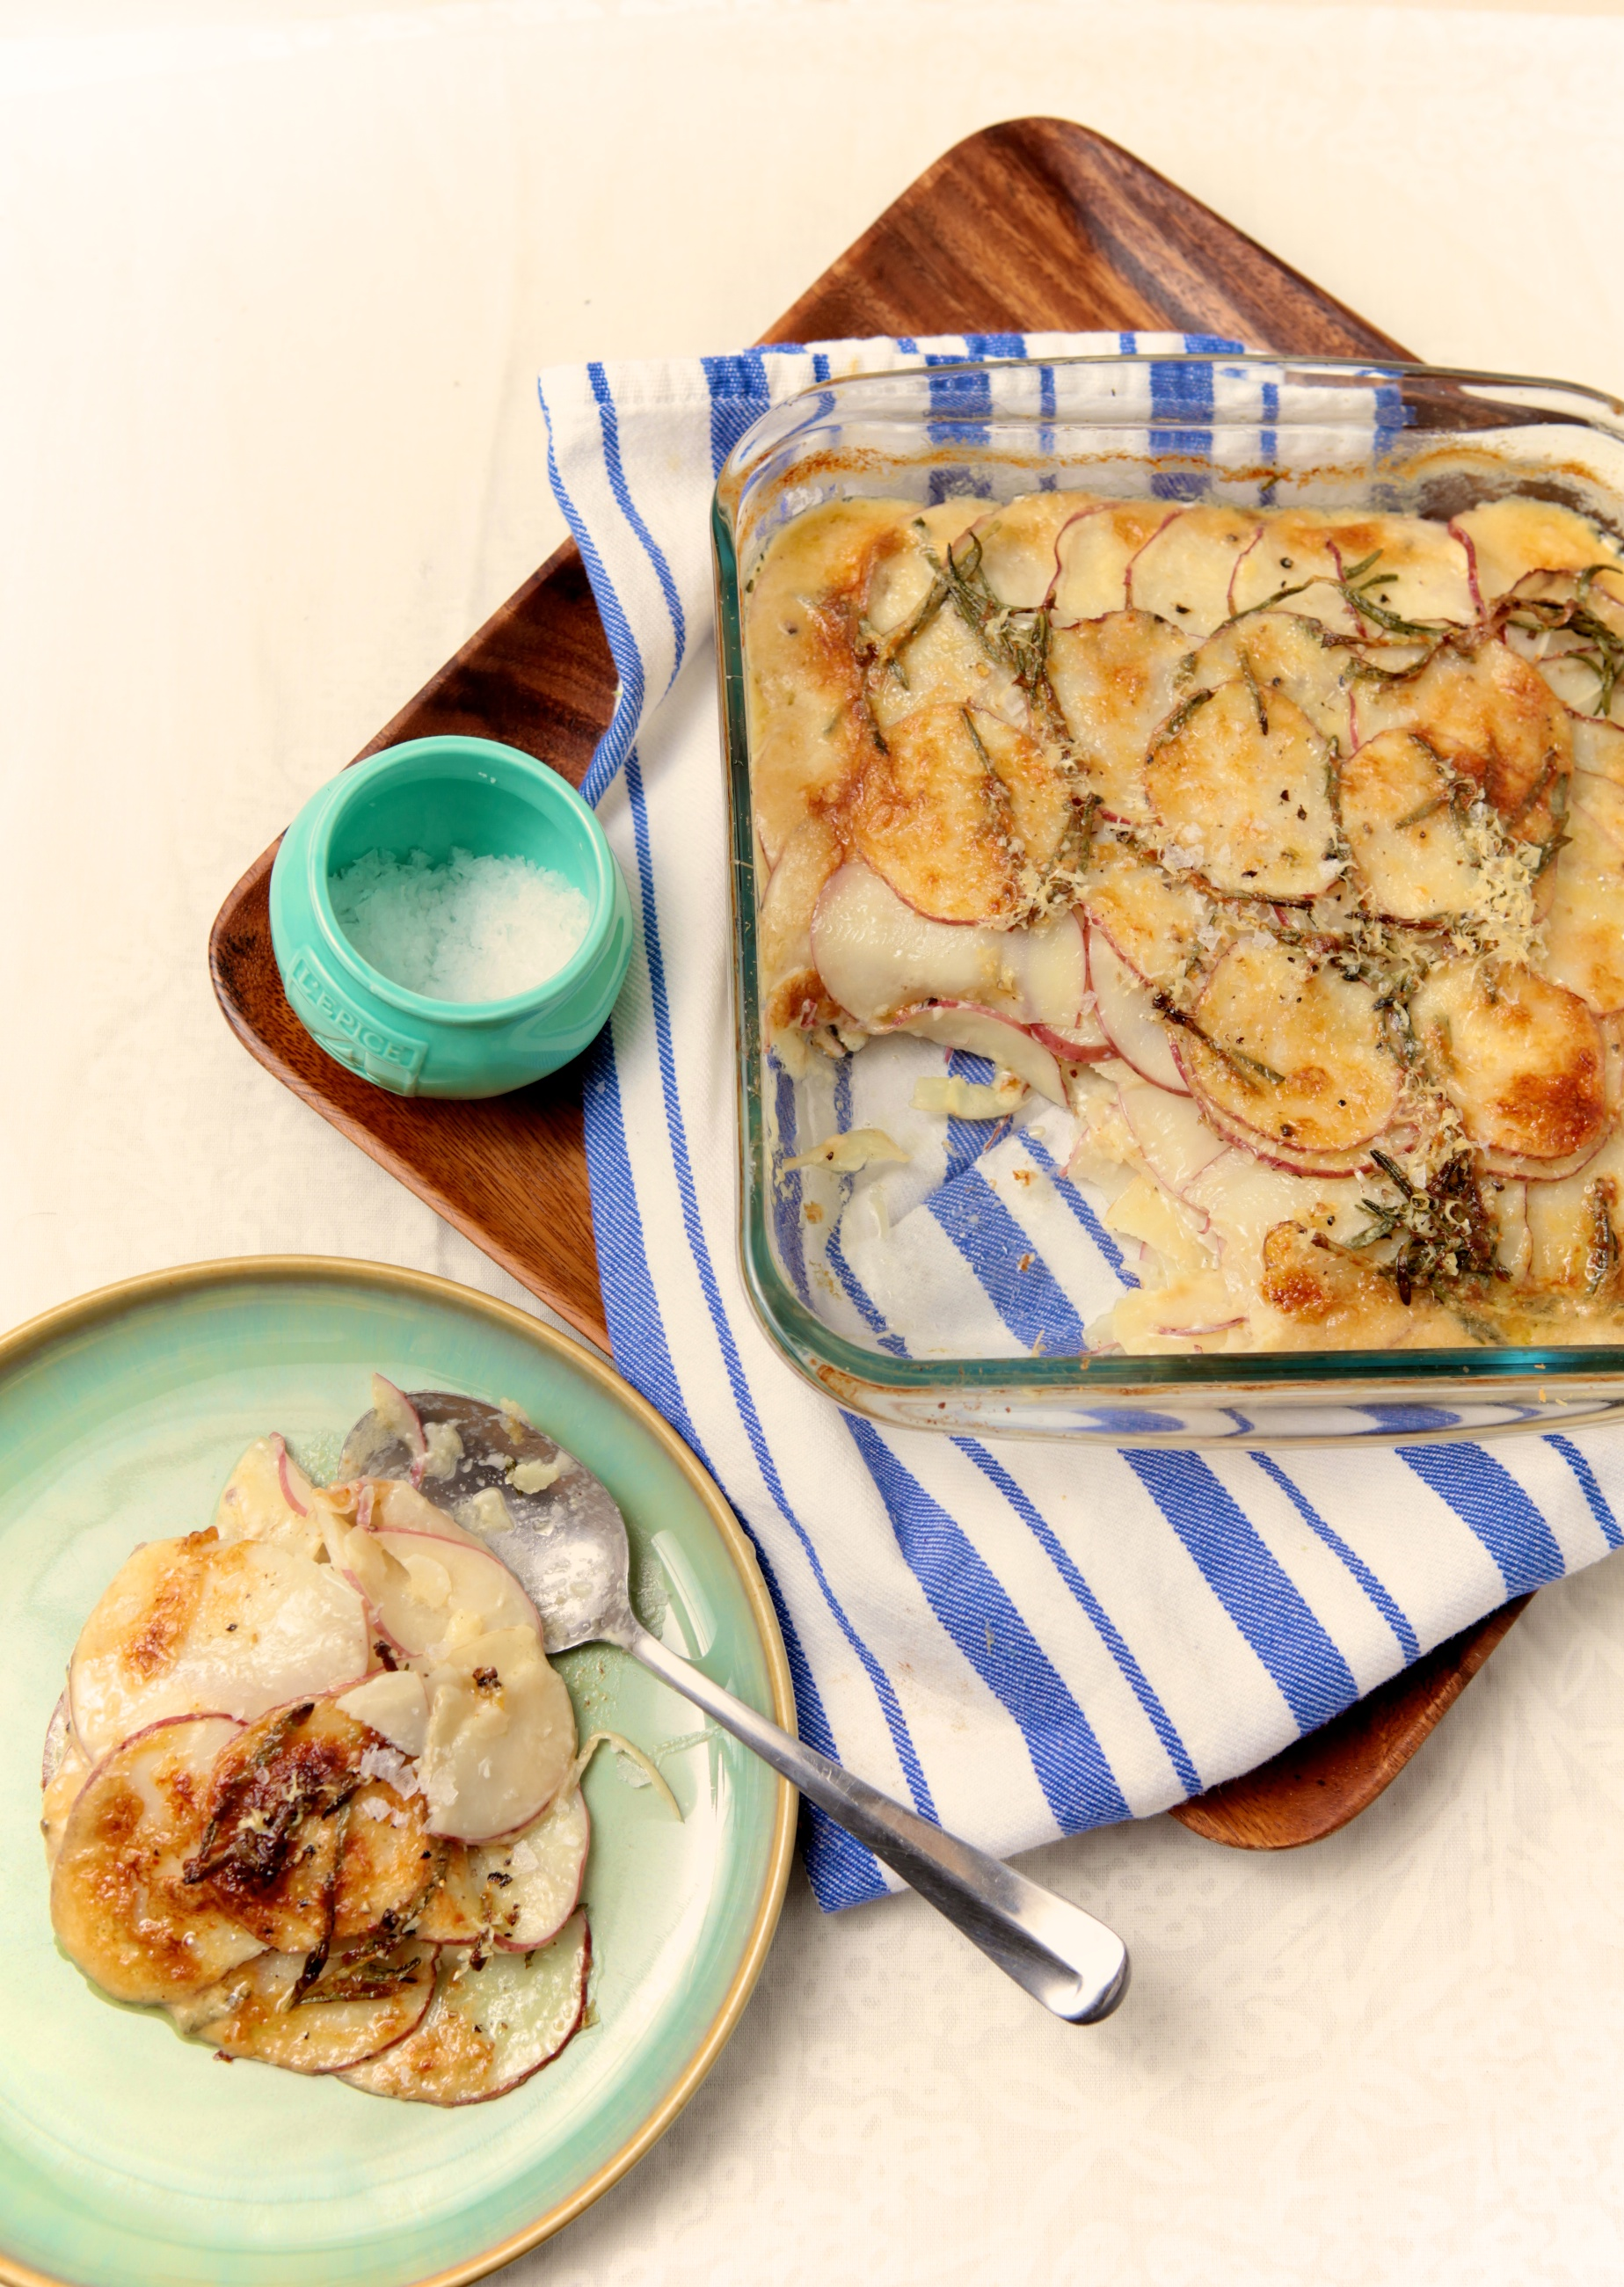 Potato Parsnip Gratin with Gruyere & Rosemary